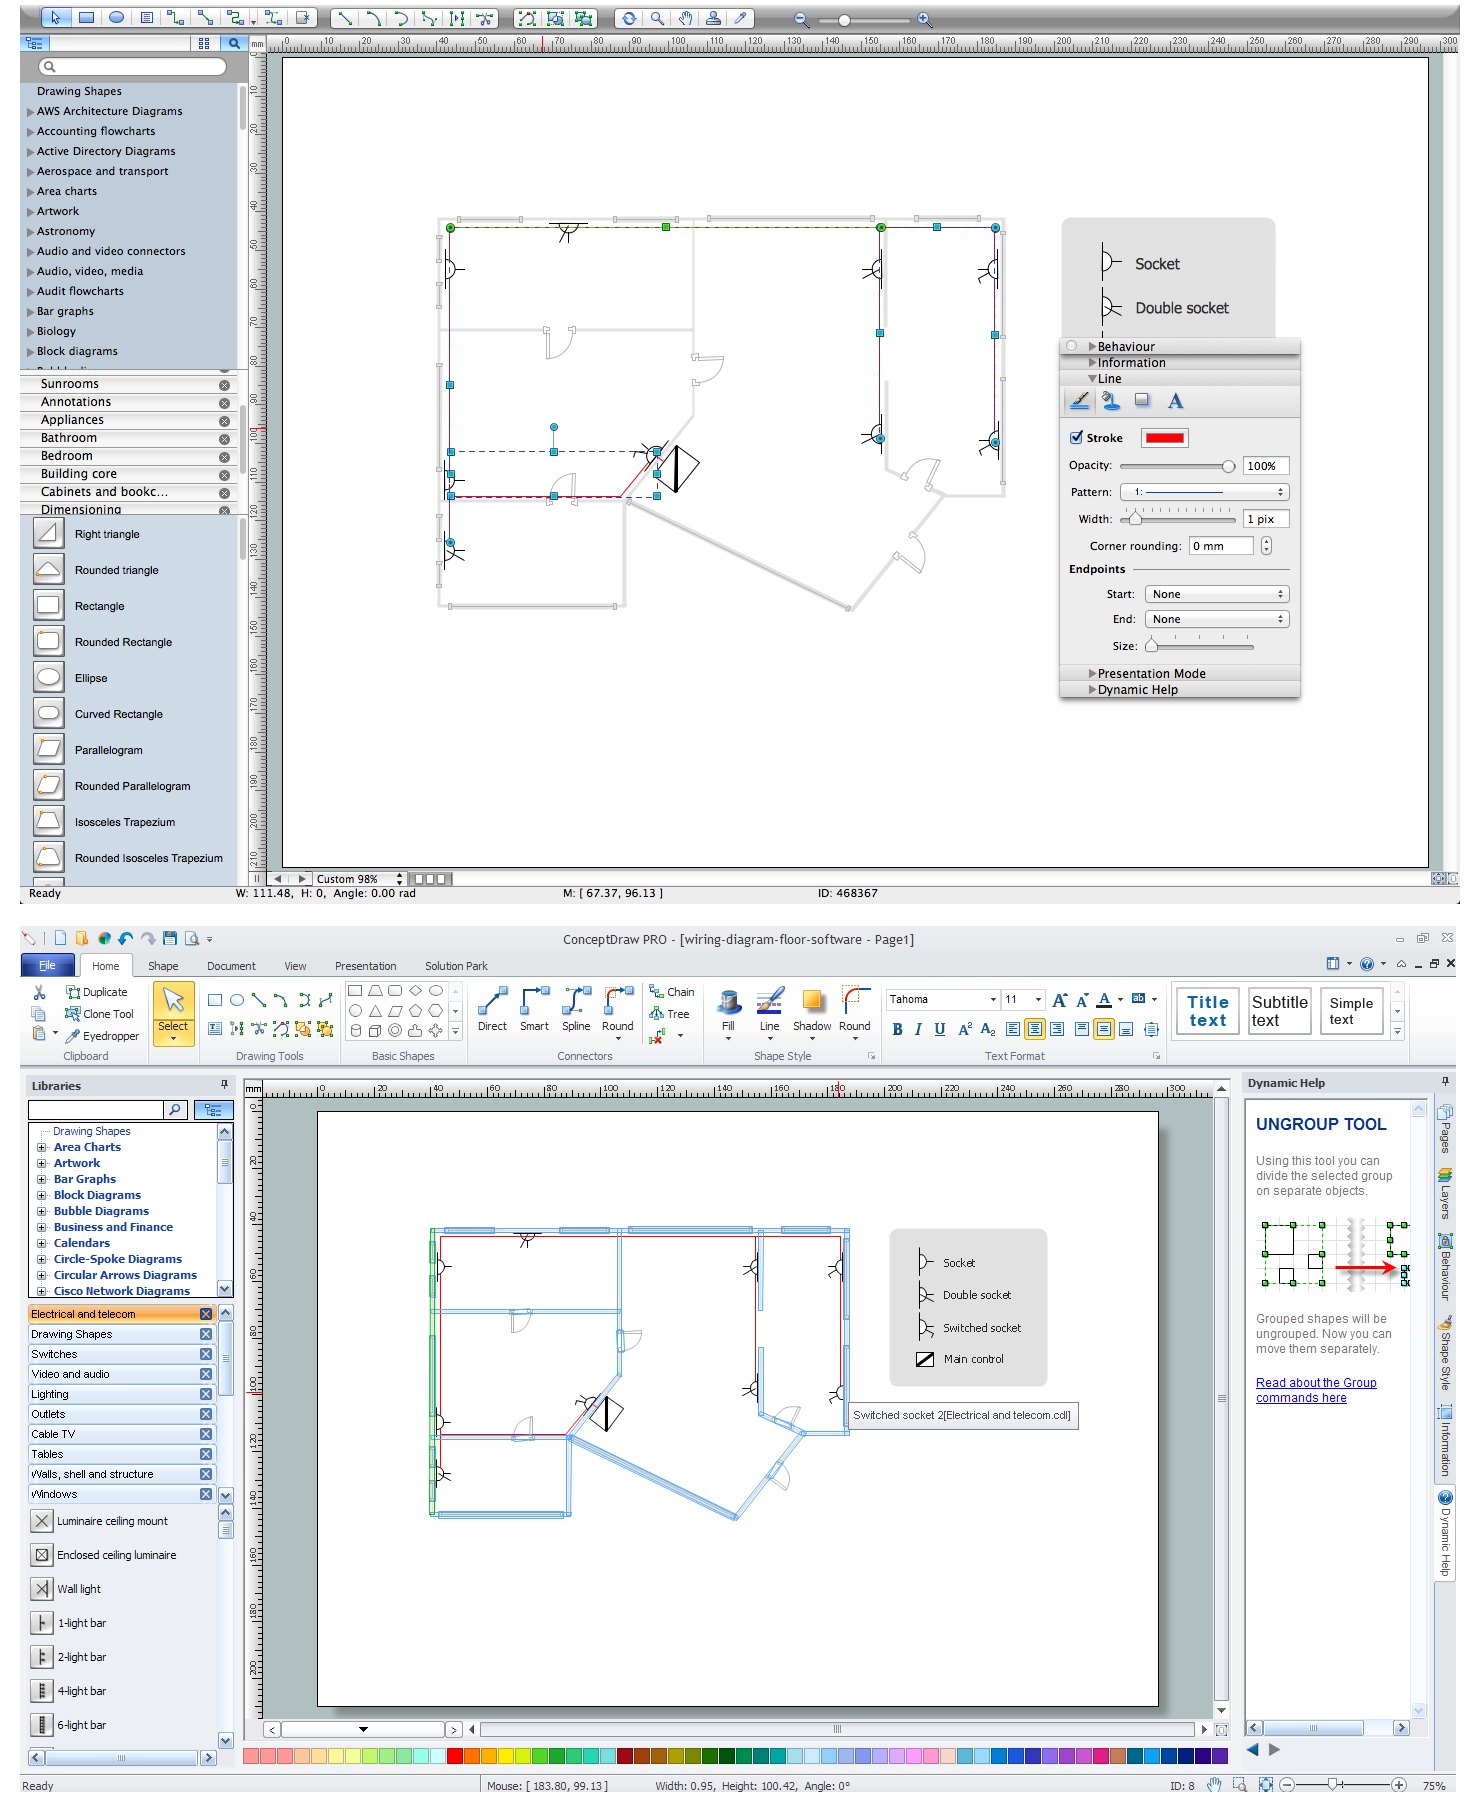 Wiring Diagram Floor Software wiring diagram with conceptdraw pro apartment wiring line diagrams at nearapp.co